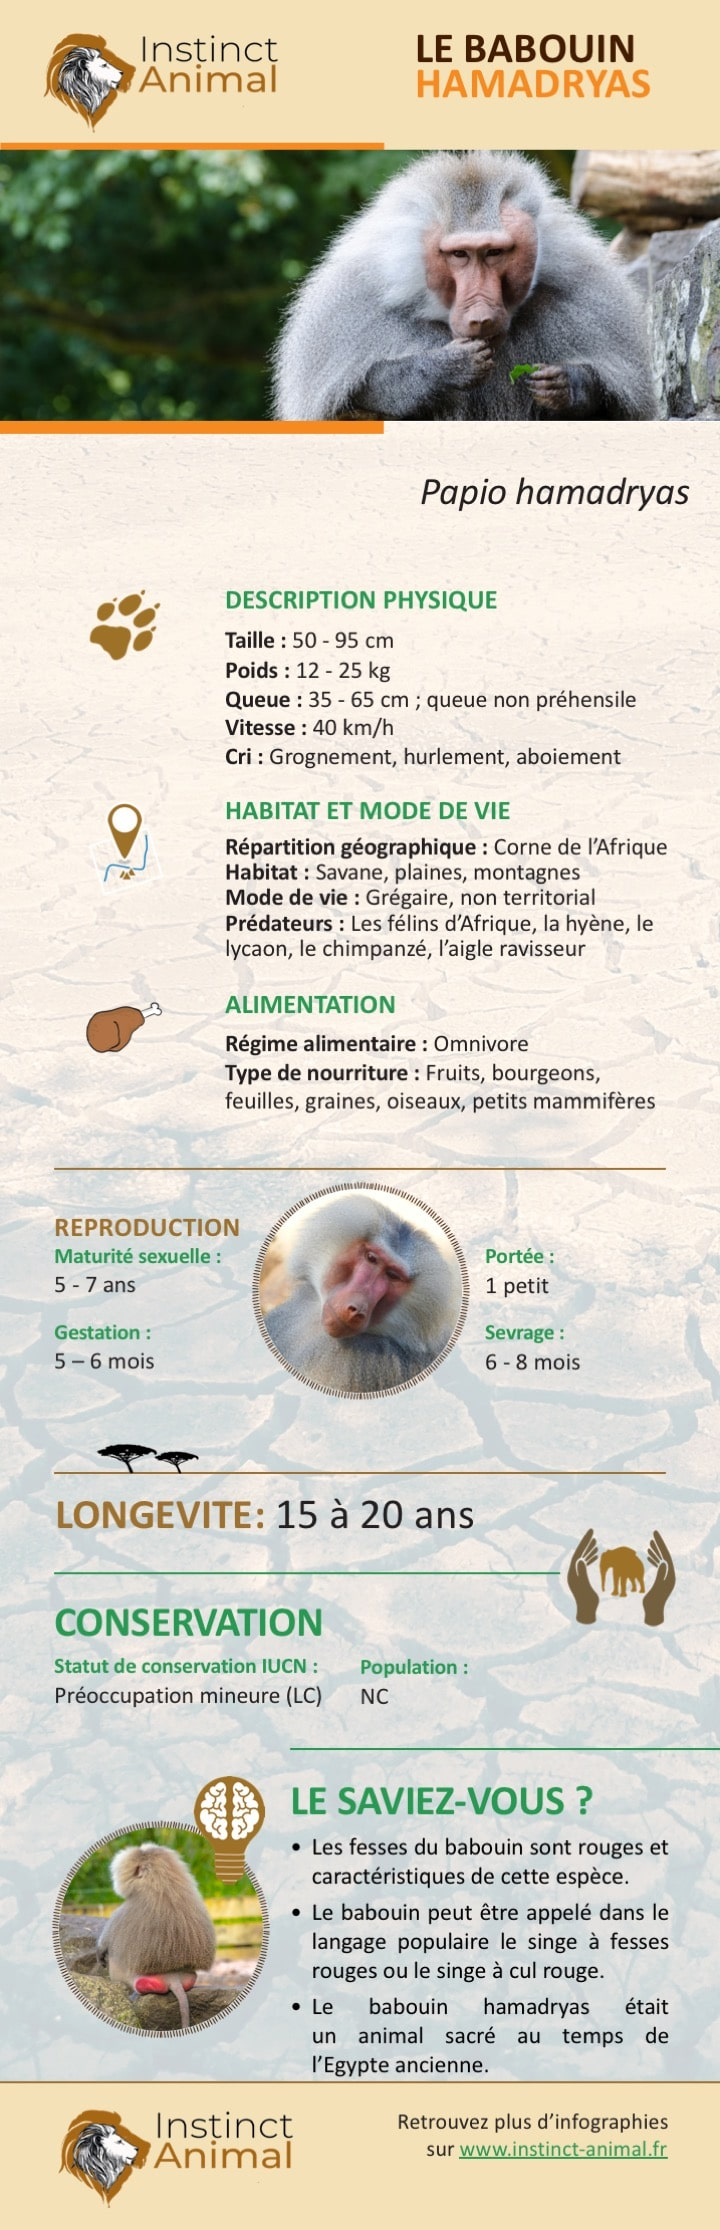 Description du babouin hamadryas - Instinct Animal